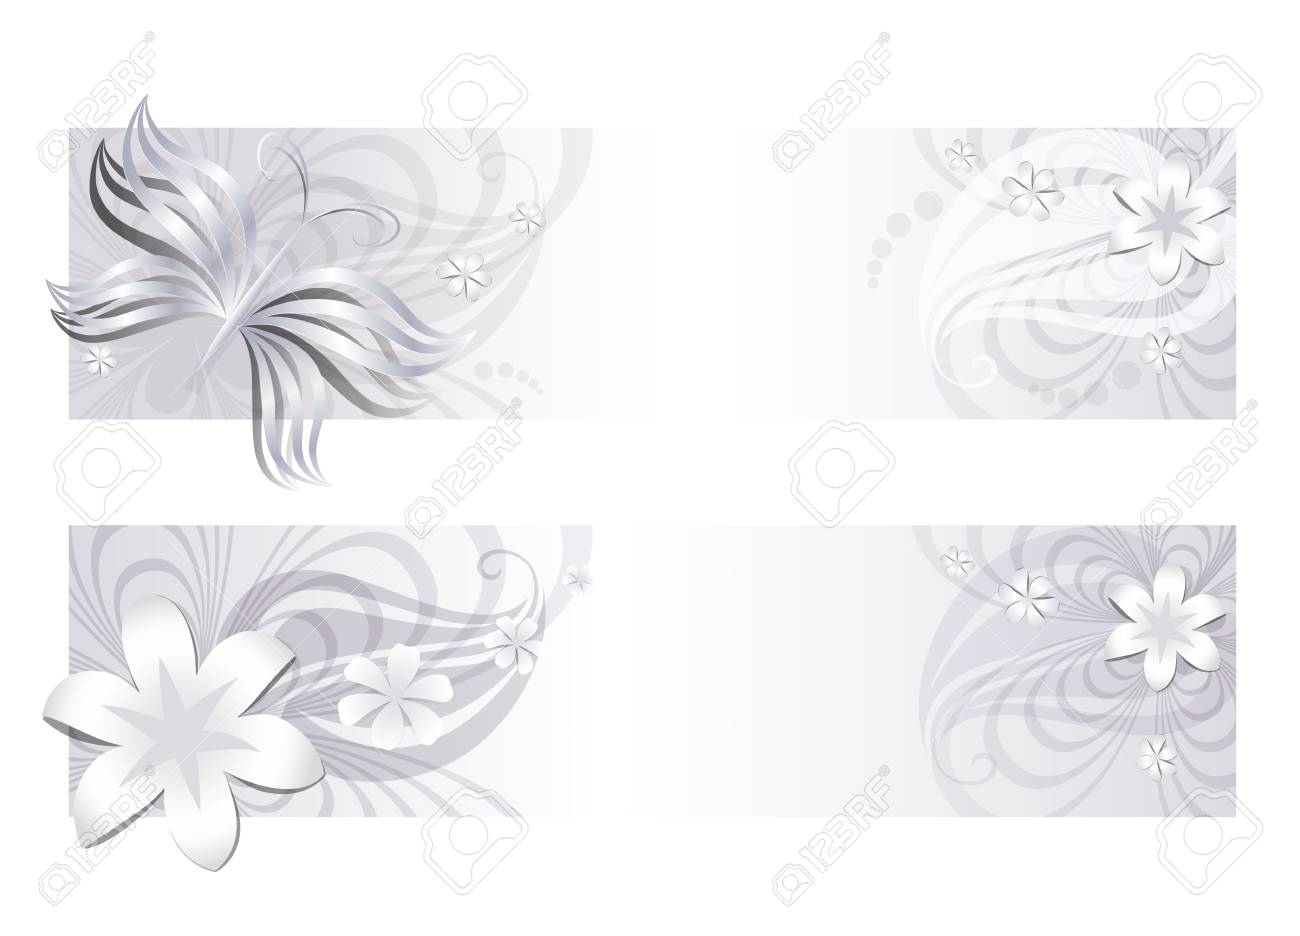 Delicate floral banners Stock Vector - 14220182